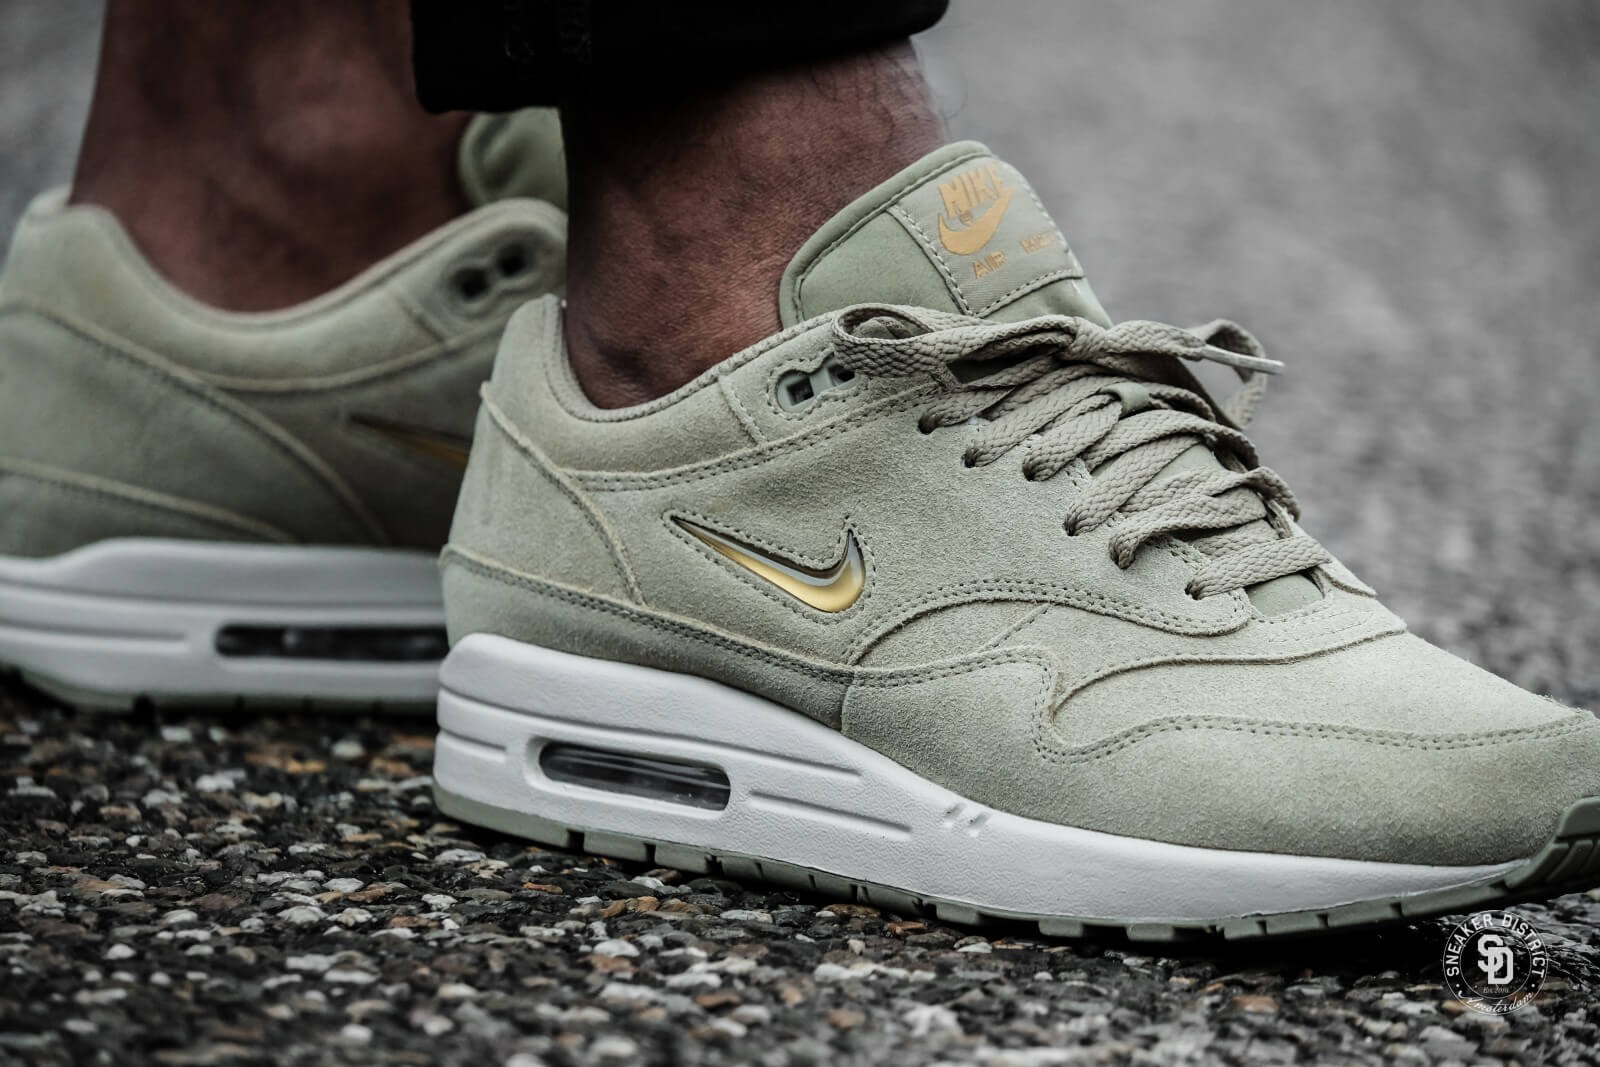 Nike Air Max 1 Premium SC Jewel Neutral OliveMetallic Gold 918354 201